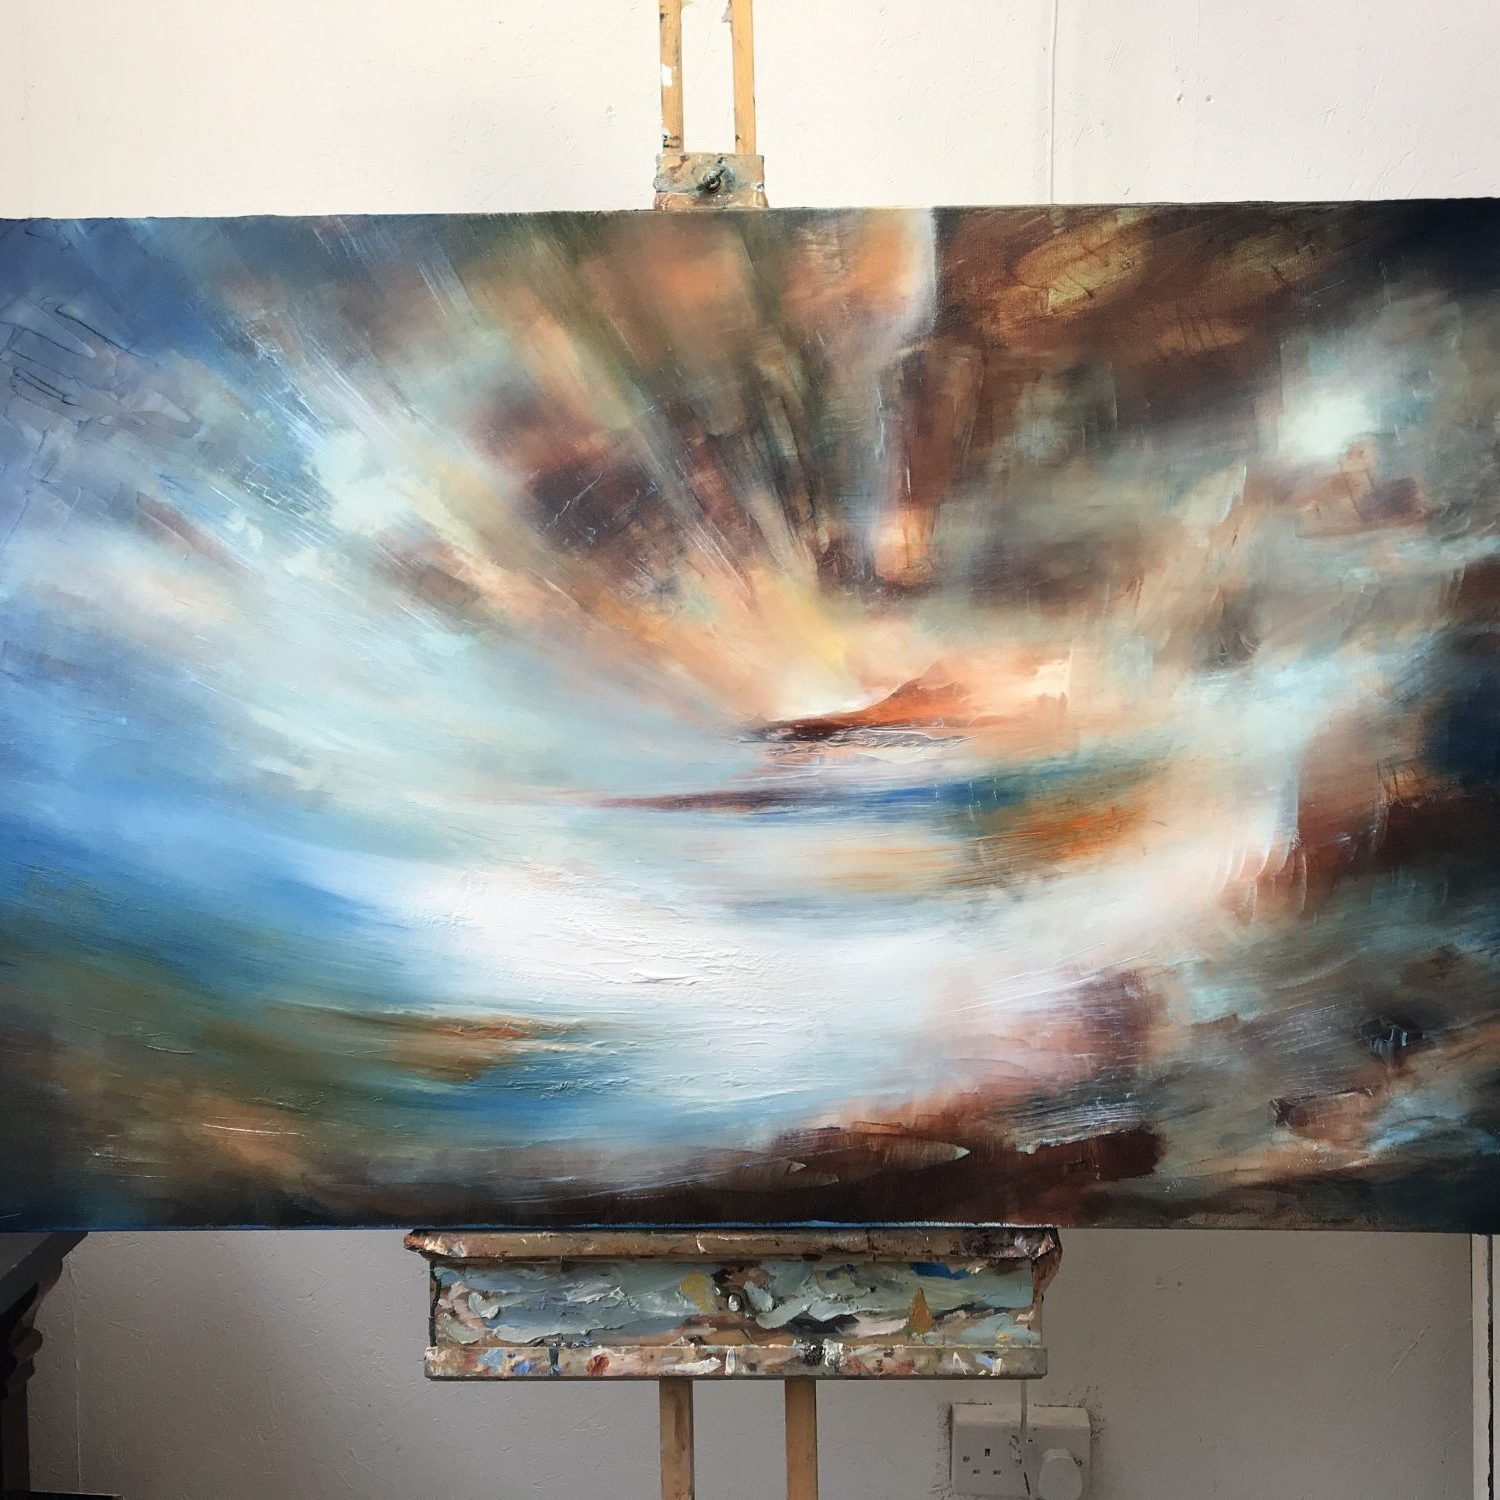 The World Beyond - abstract landscape painting by Paul Kingsley Squire